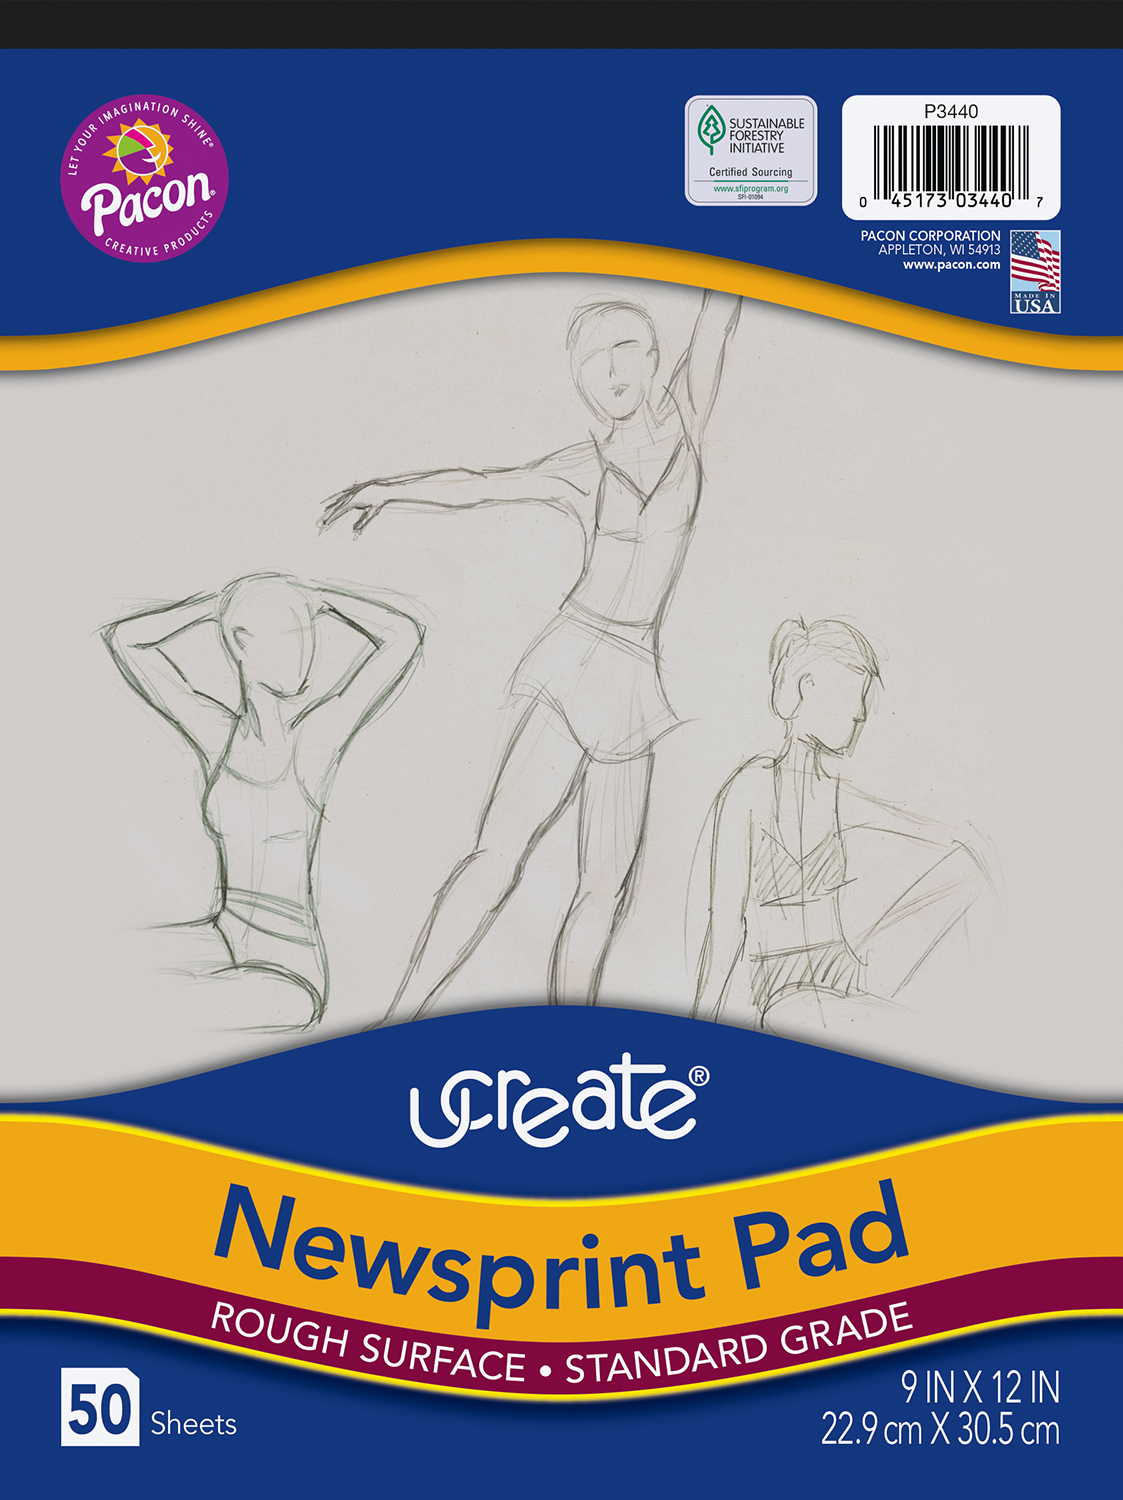 UCreate® Newsprint Pad